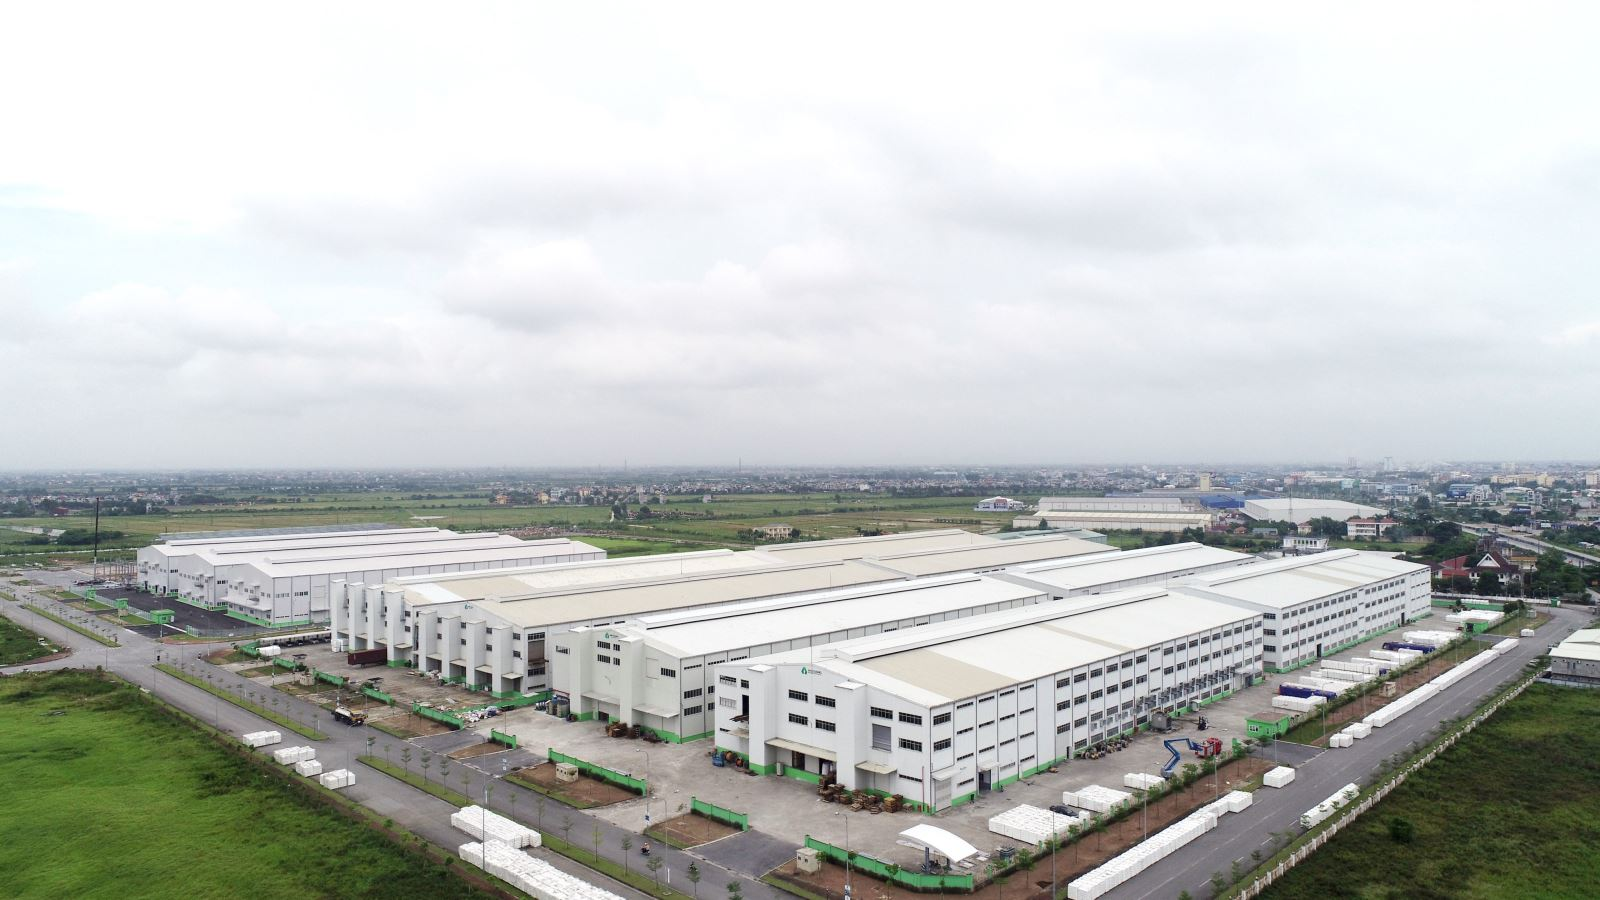 Overview of An Phat high-tech industrial zone, Hai Duong